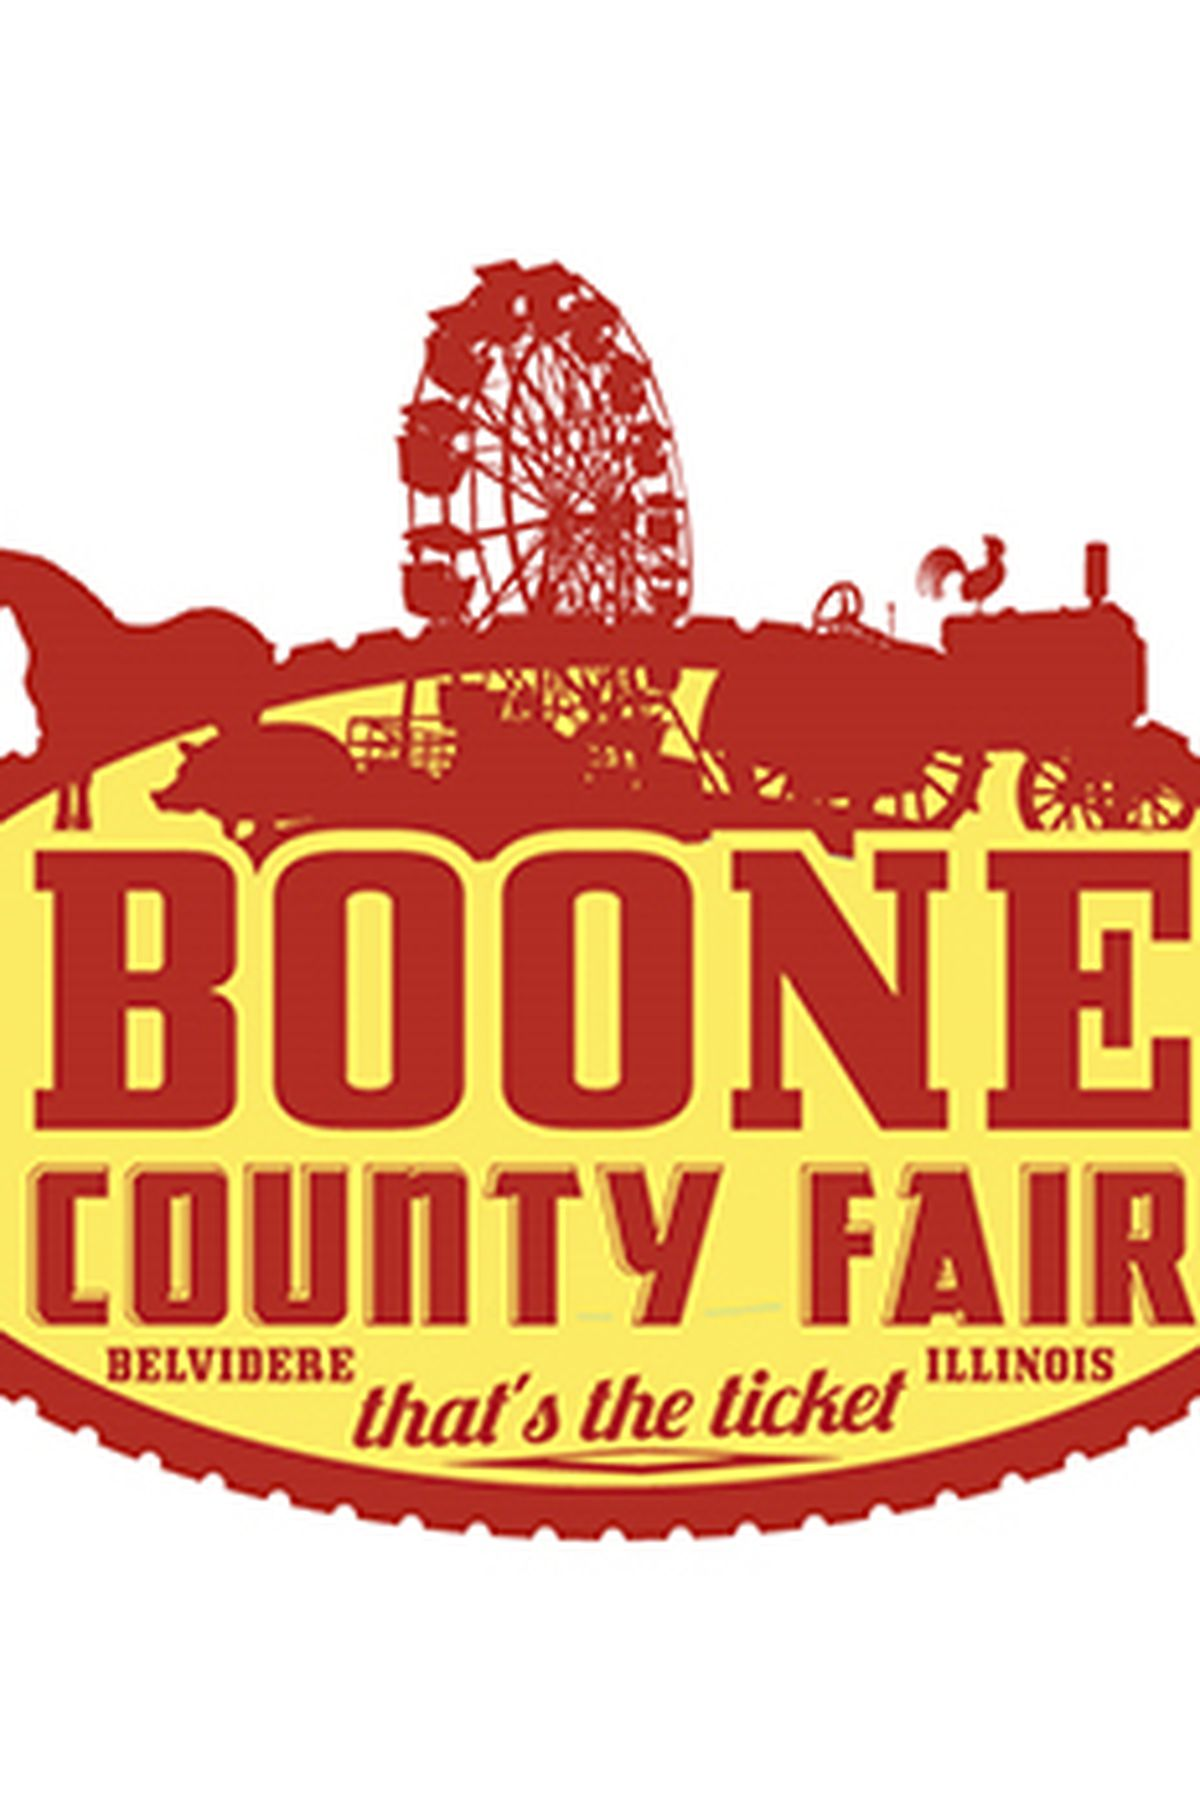 Belvidere Halloween Parade 2020 Cancelled Boone County fair has officially been canceled for 2020